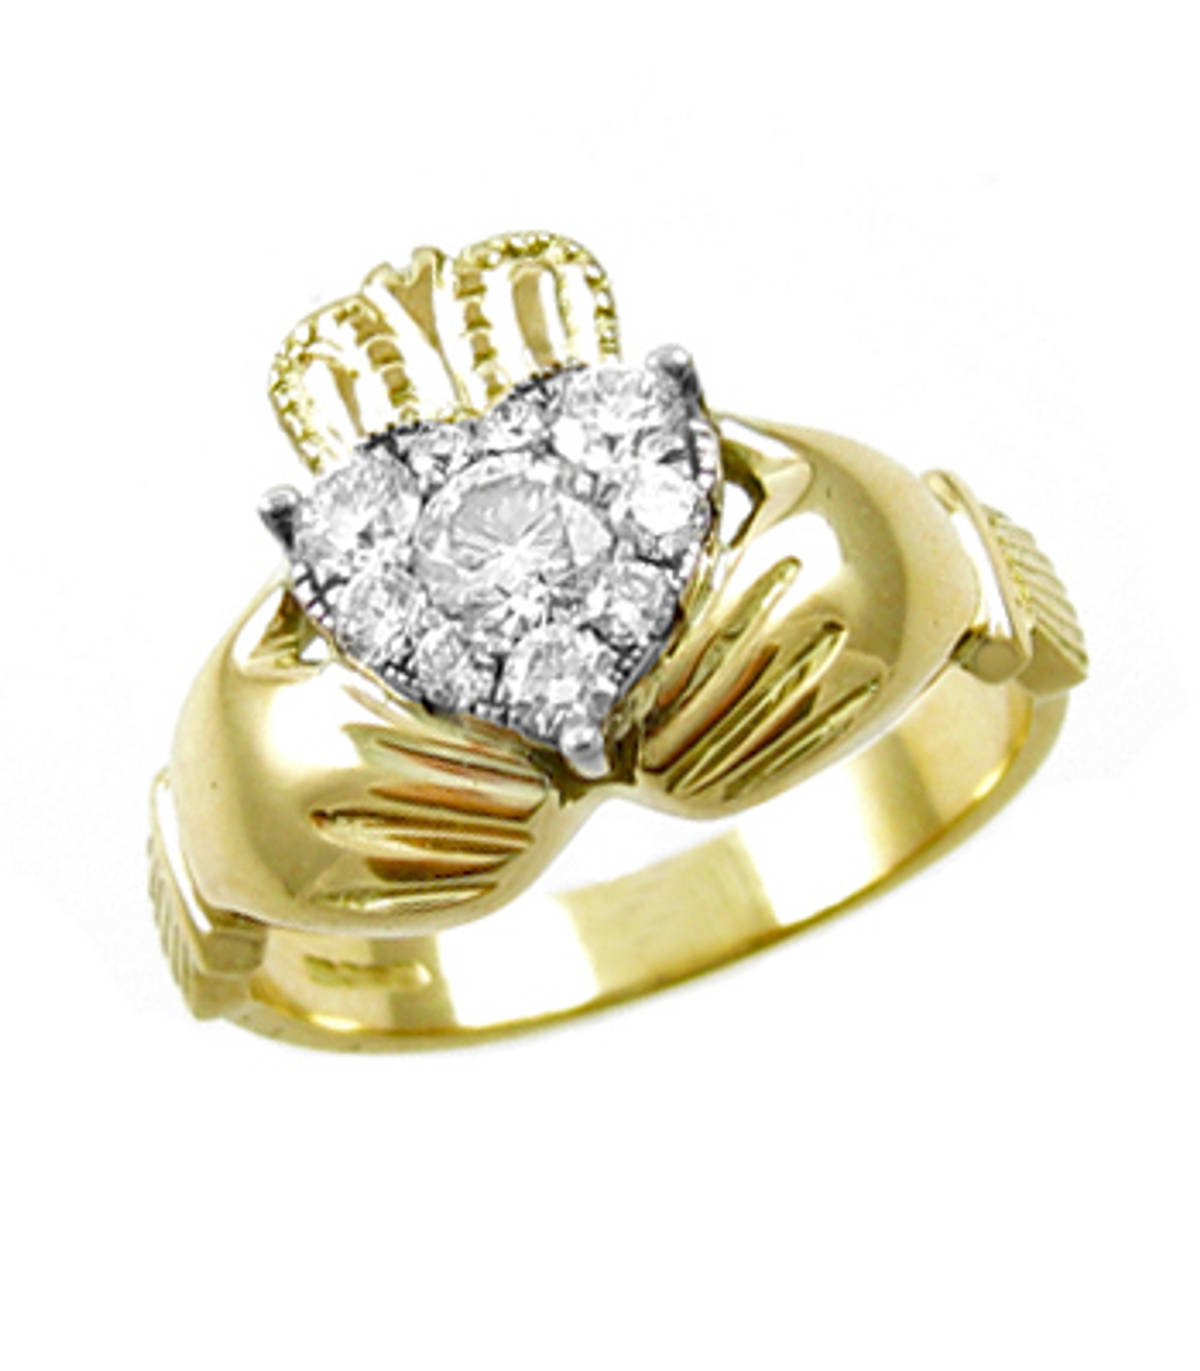 Irish made 14 carat yellow gold 0.24cts/0.30cts diamonds claddagh engagement ring